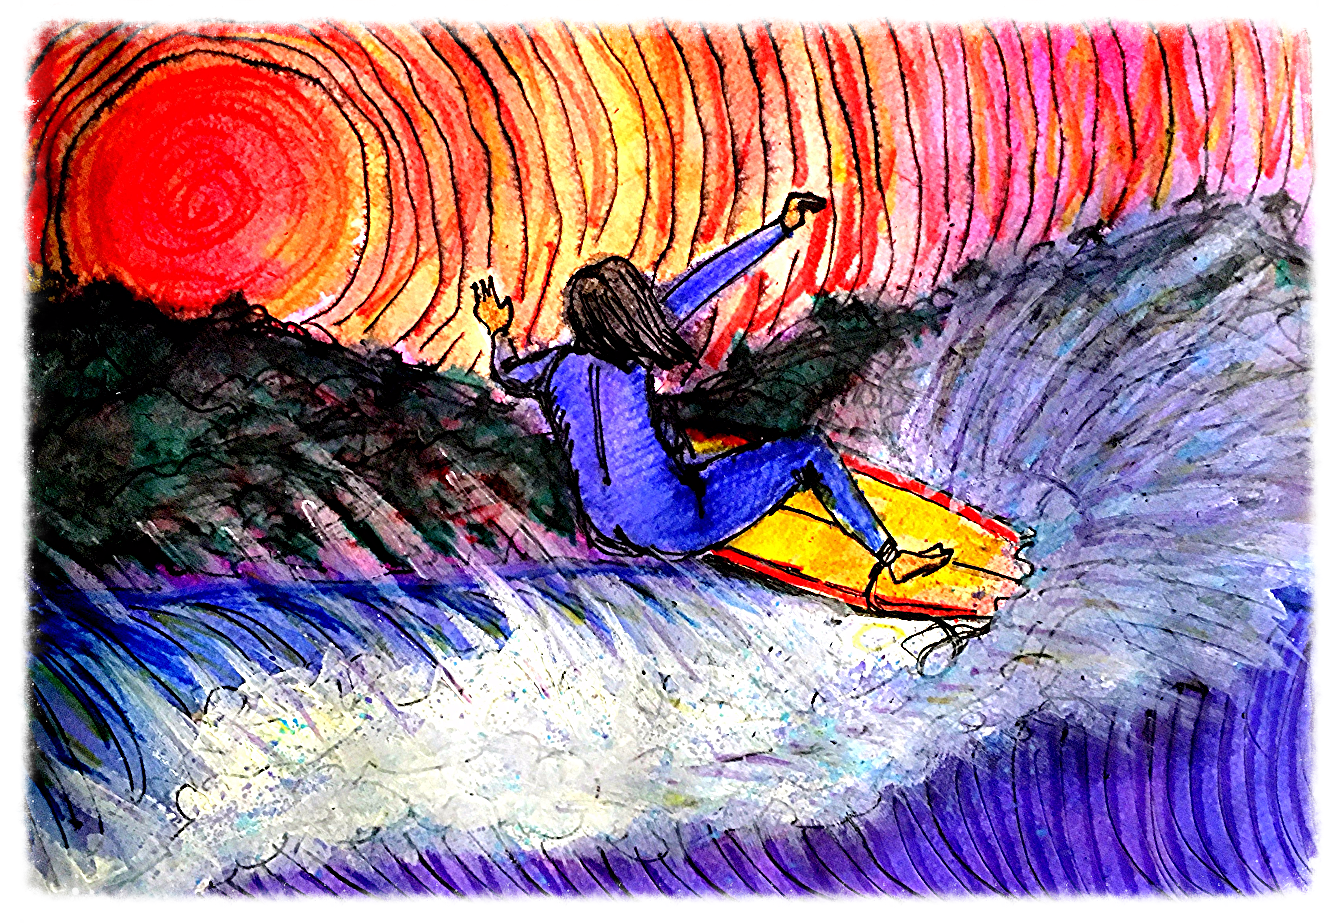 Surf Art  by Brent January #26